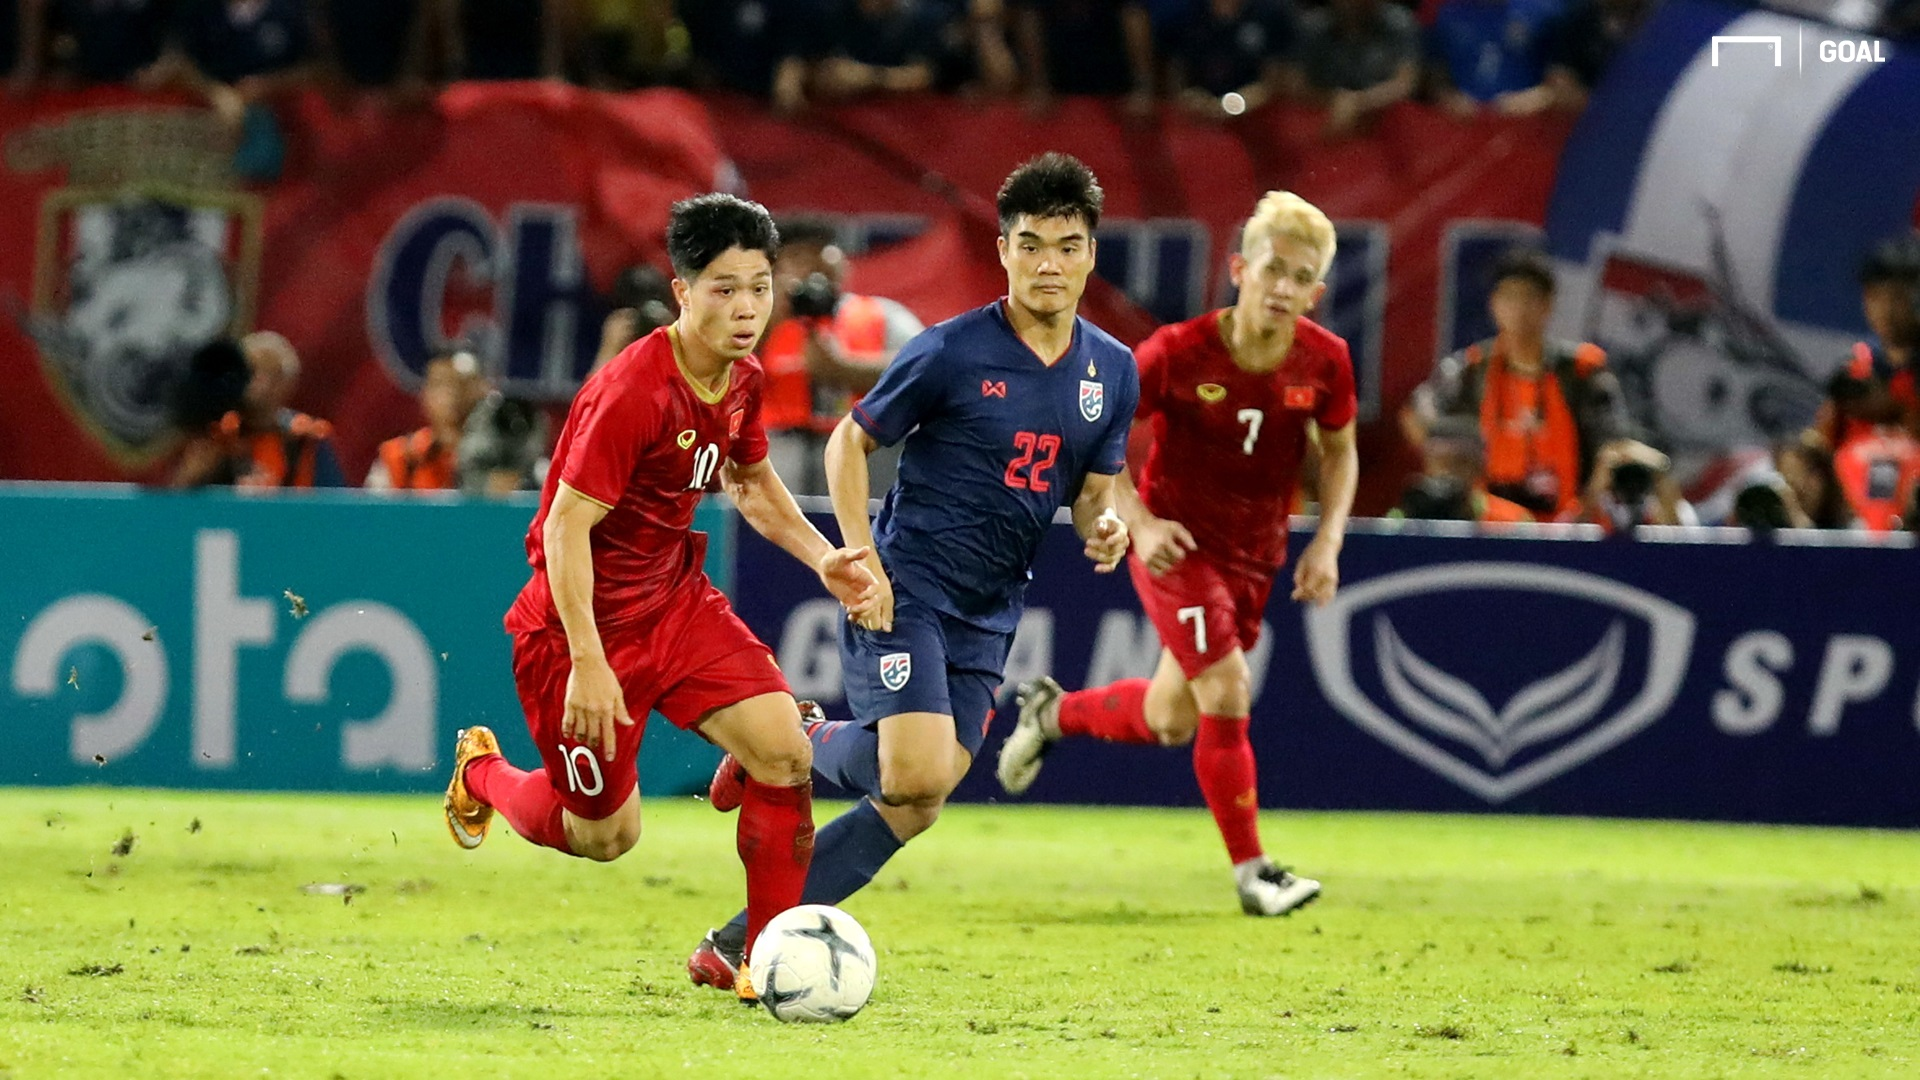 Nguyen Cong Phuong Thailand vs Vietnam 2022 FIFA World Cup qualification